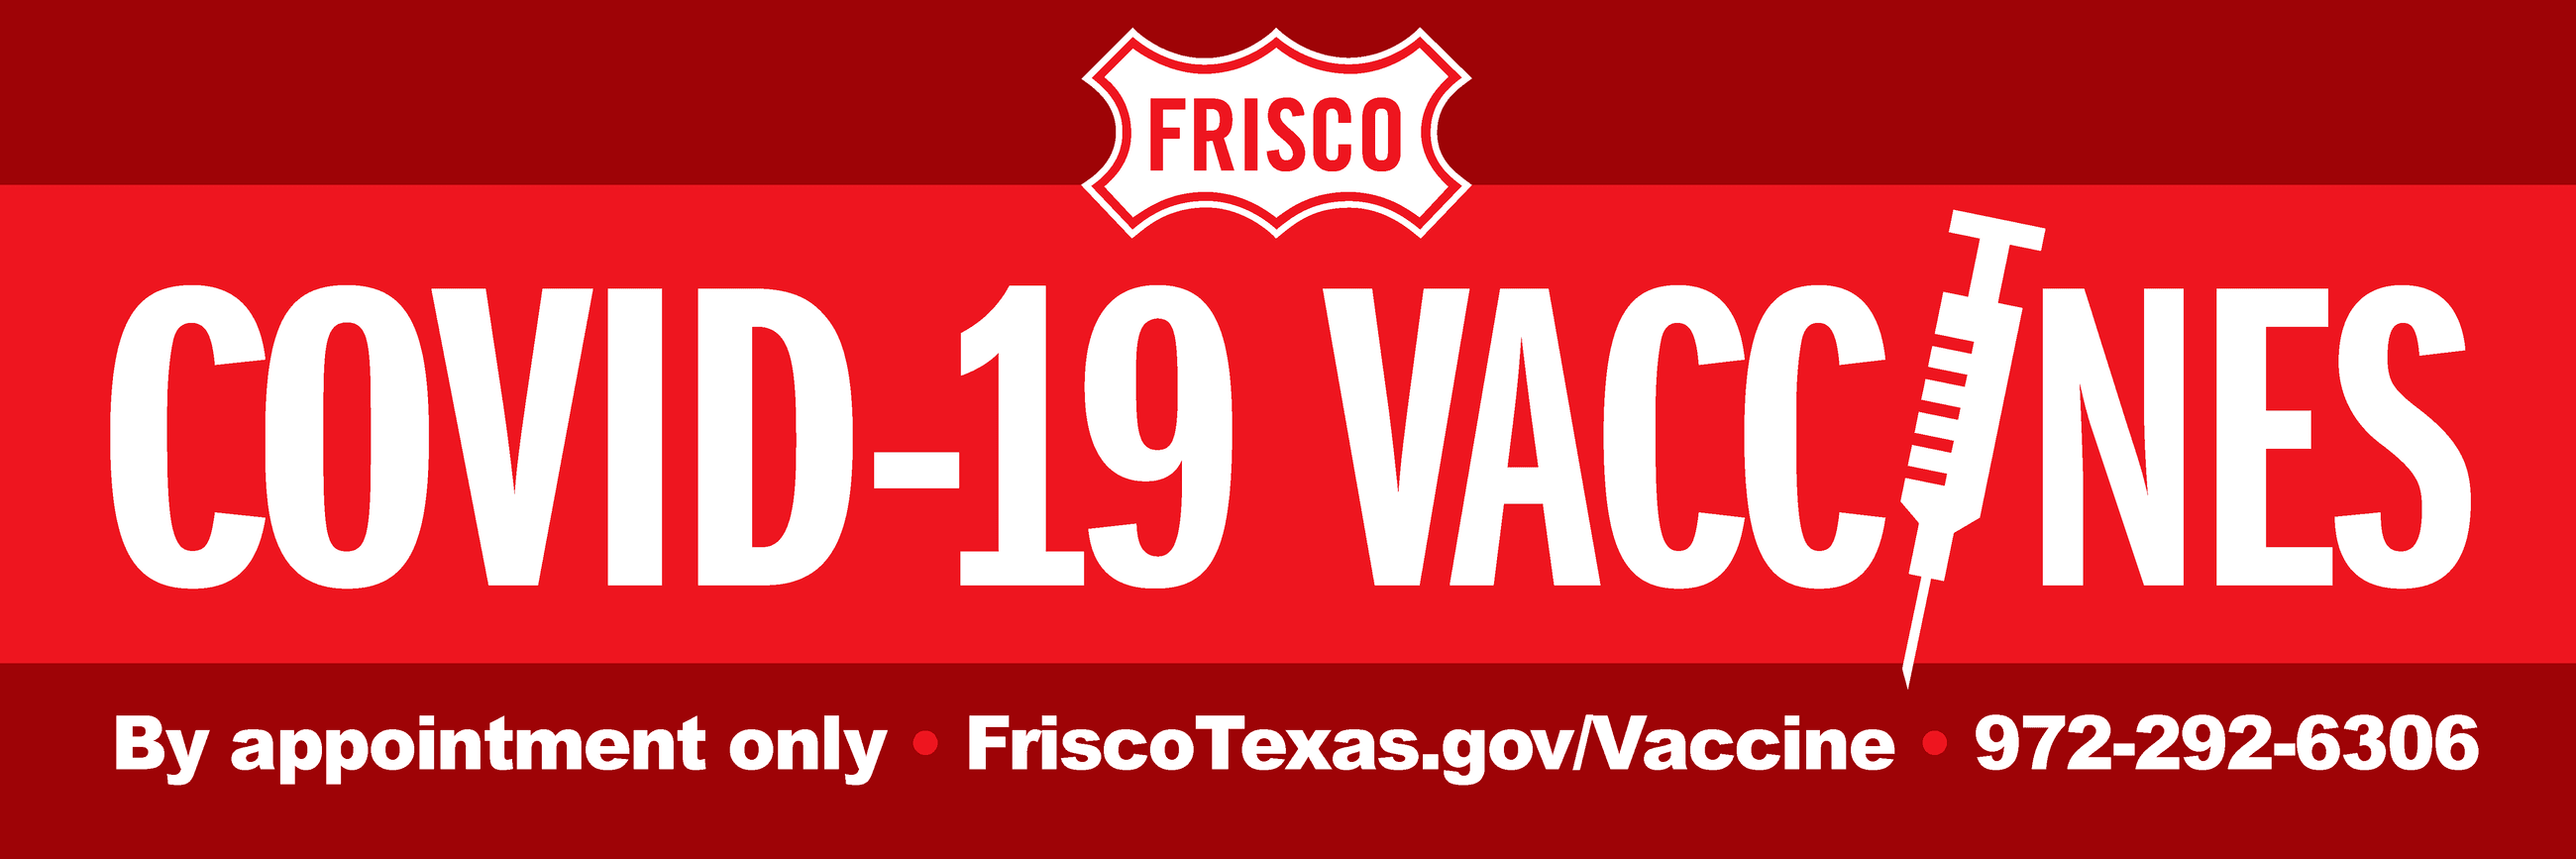 City of Frisco Vaccination Hub Appointment Registration